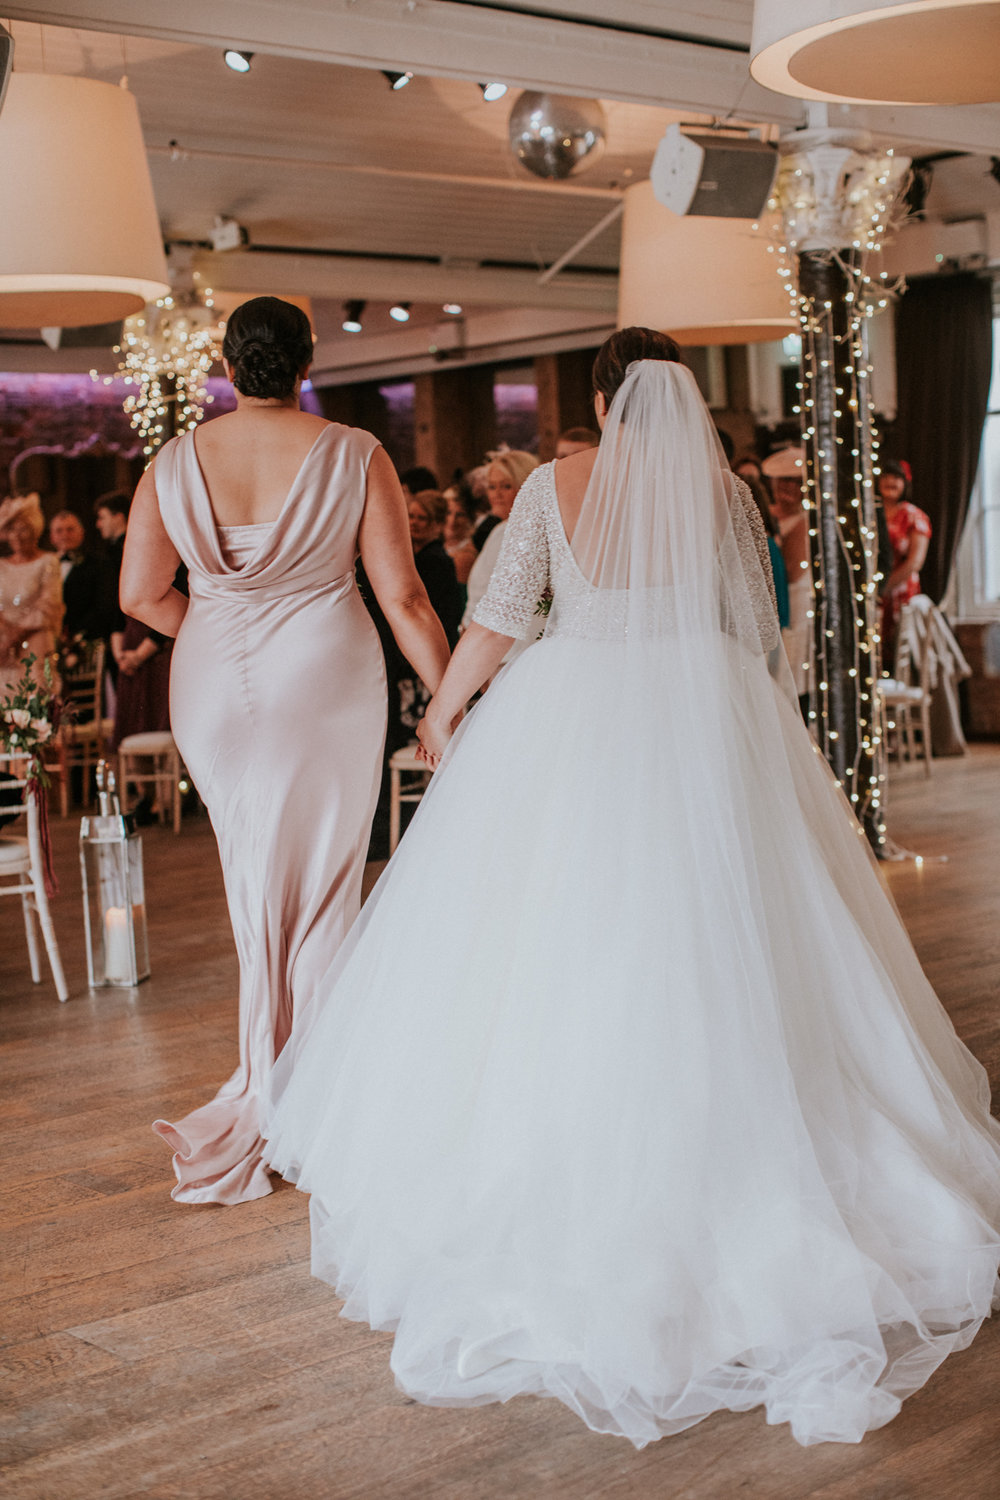 The bride is walking down the aisle with her sister